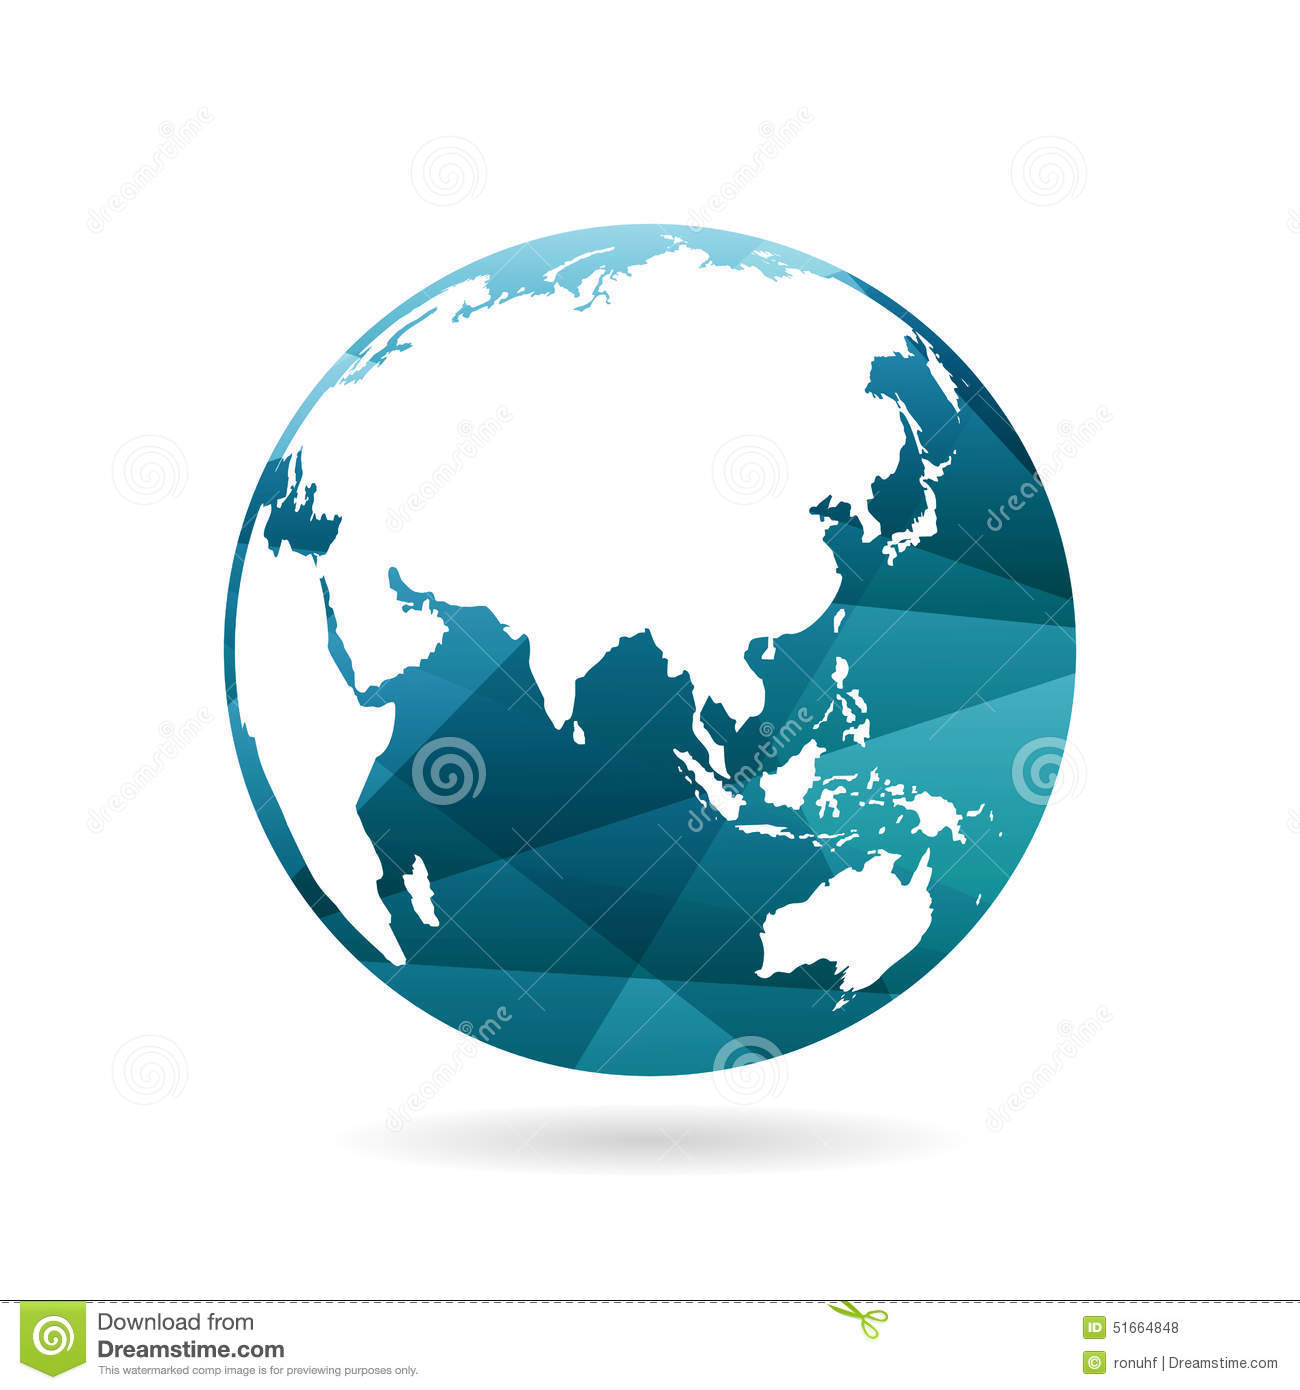 Geometric Abstract Earth Globe Sphere Concept Illustration